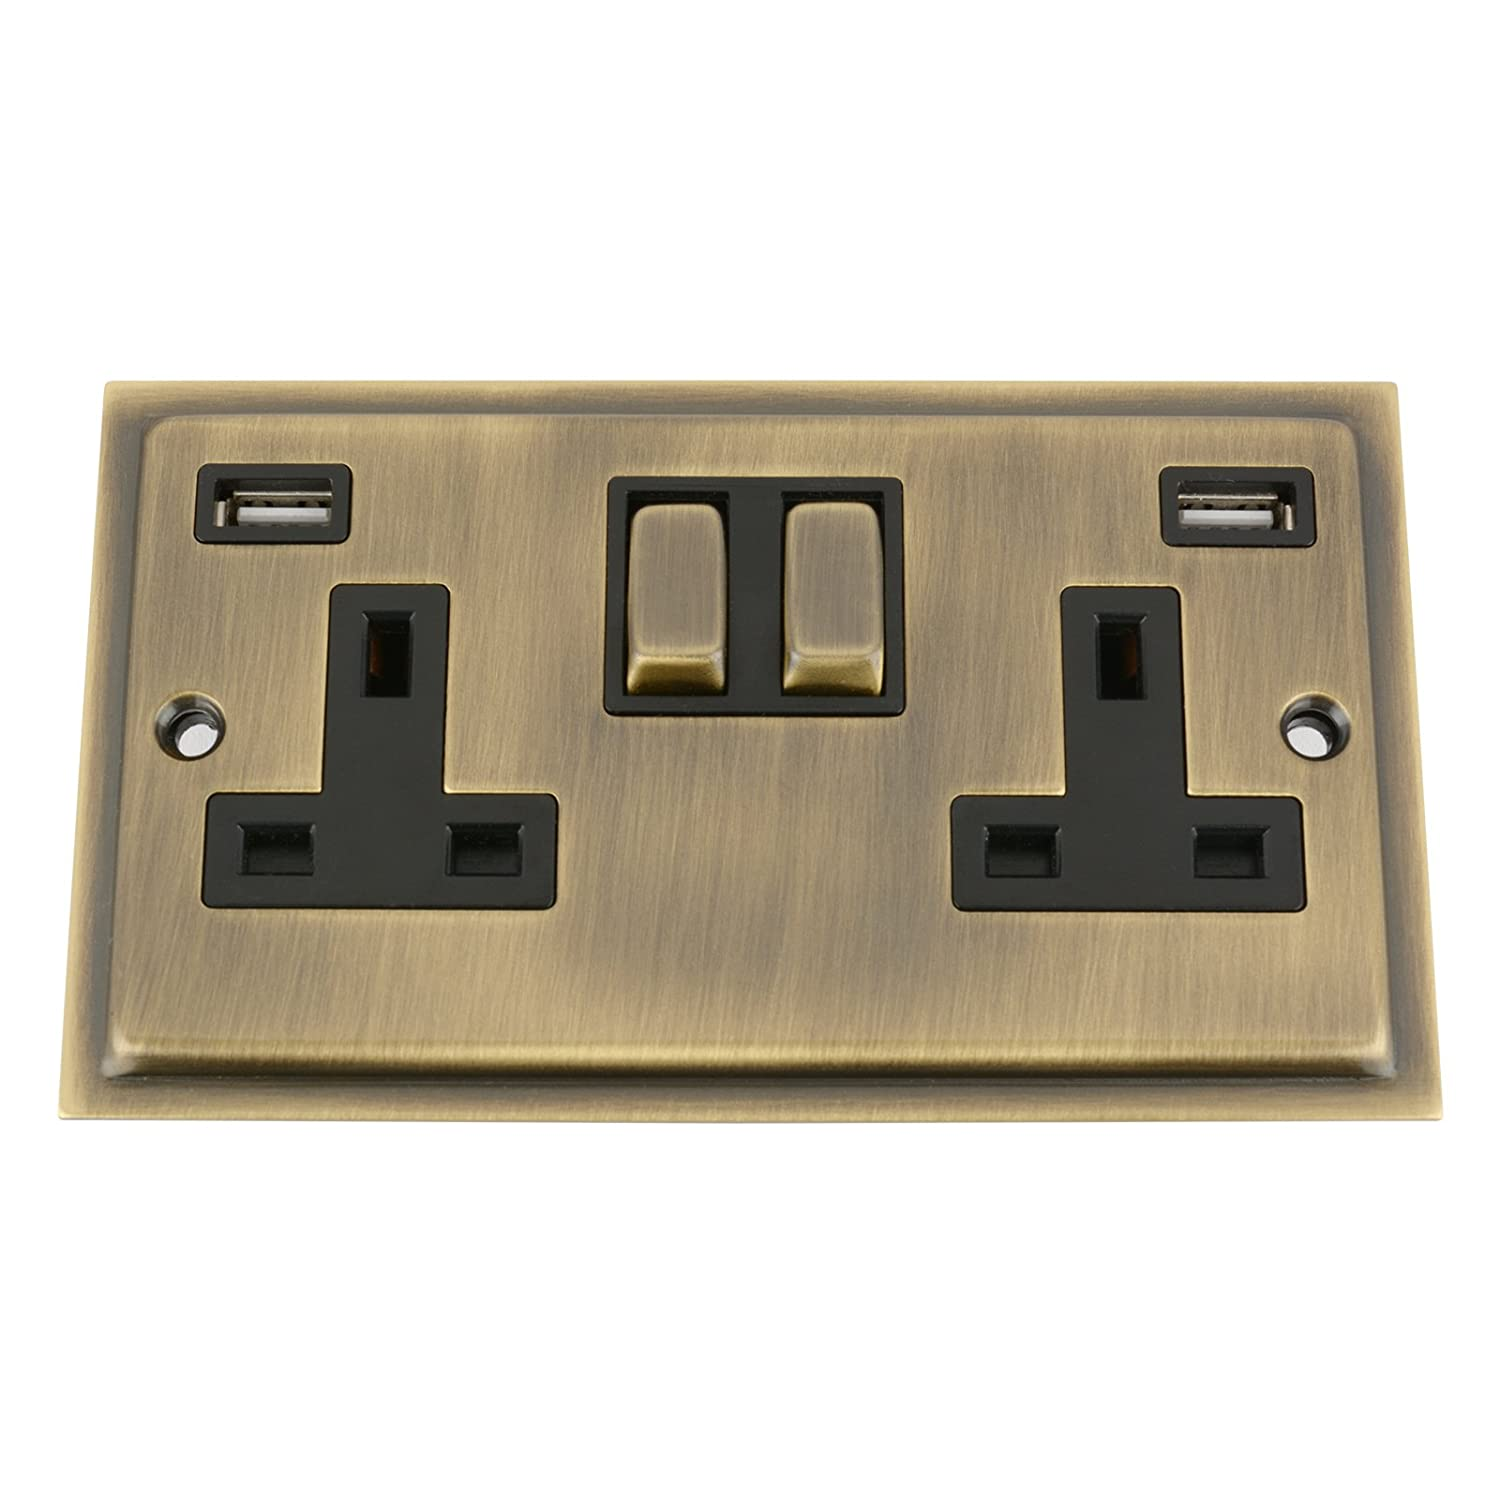 Antique Brass Slimline/Elegance USB Socket 2 Gang Black Insert Metal Rocker Switch (3100mA) A5 Products Ltd